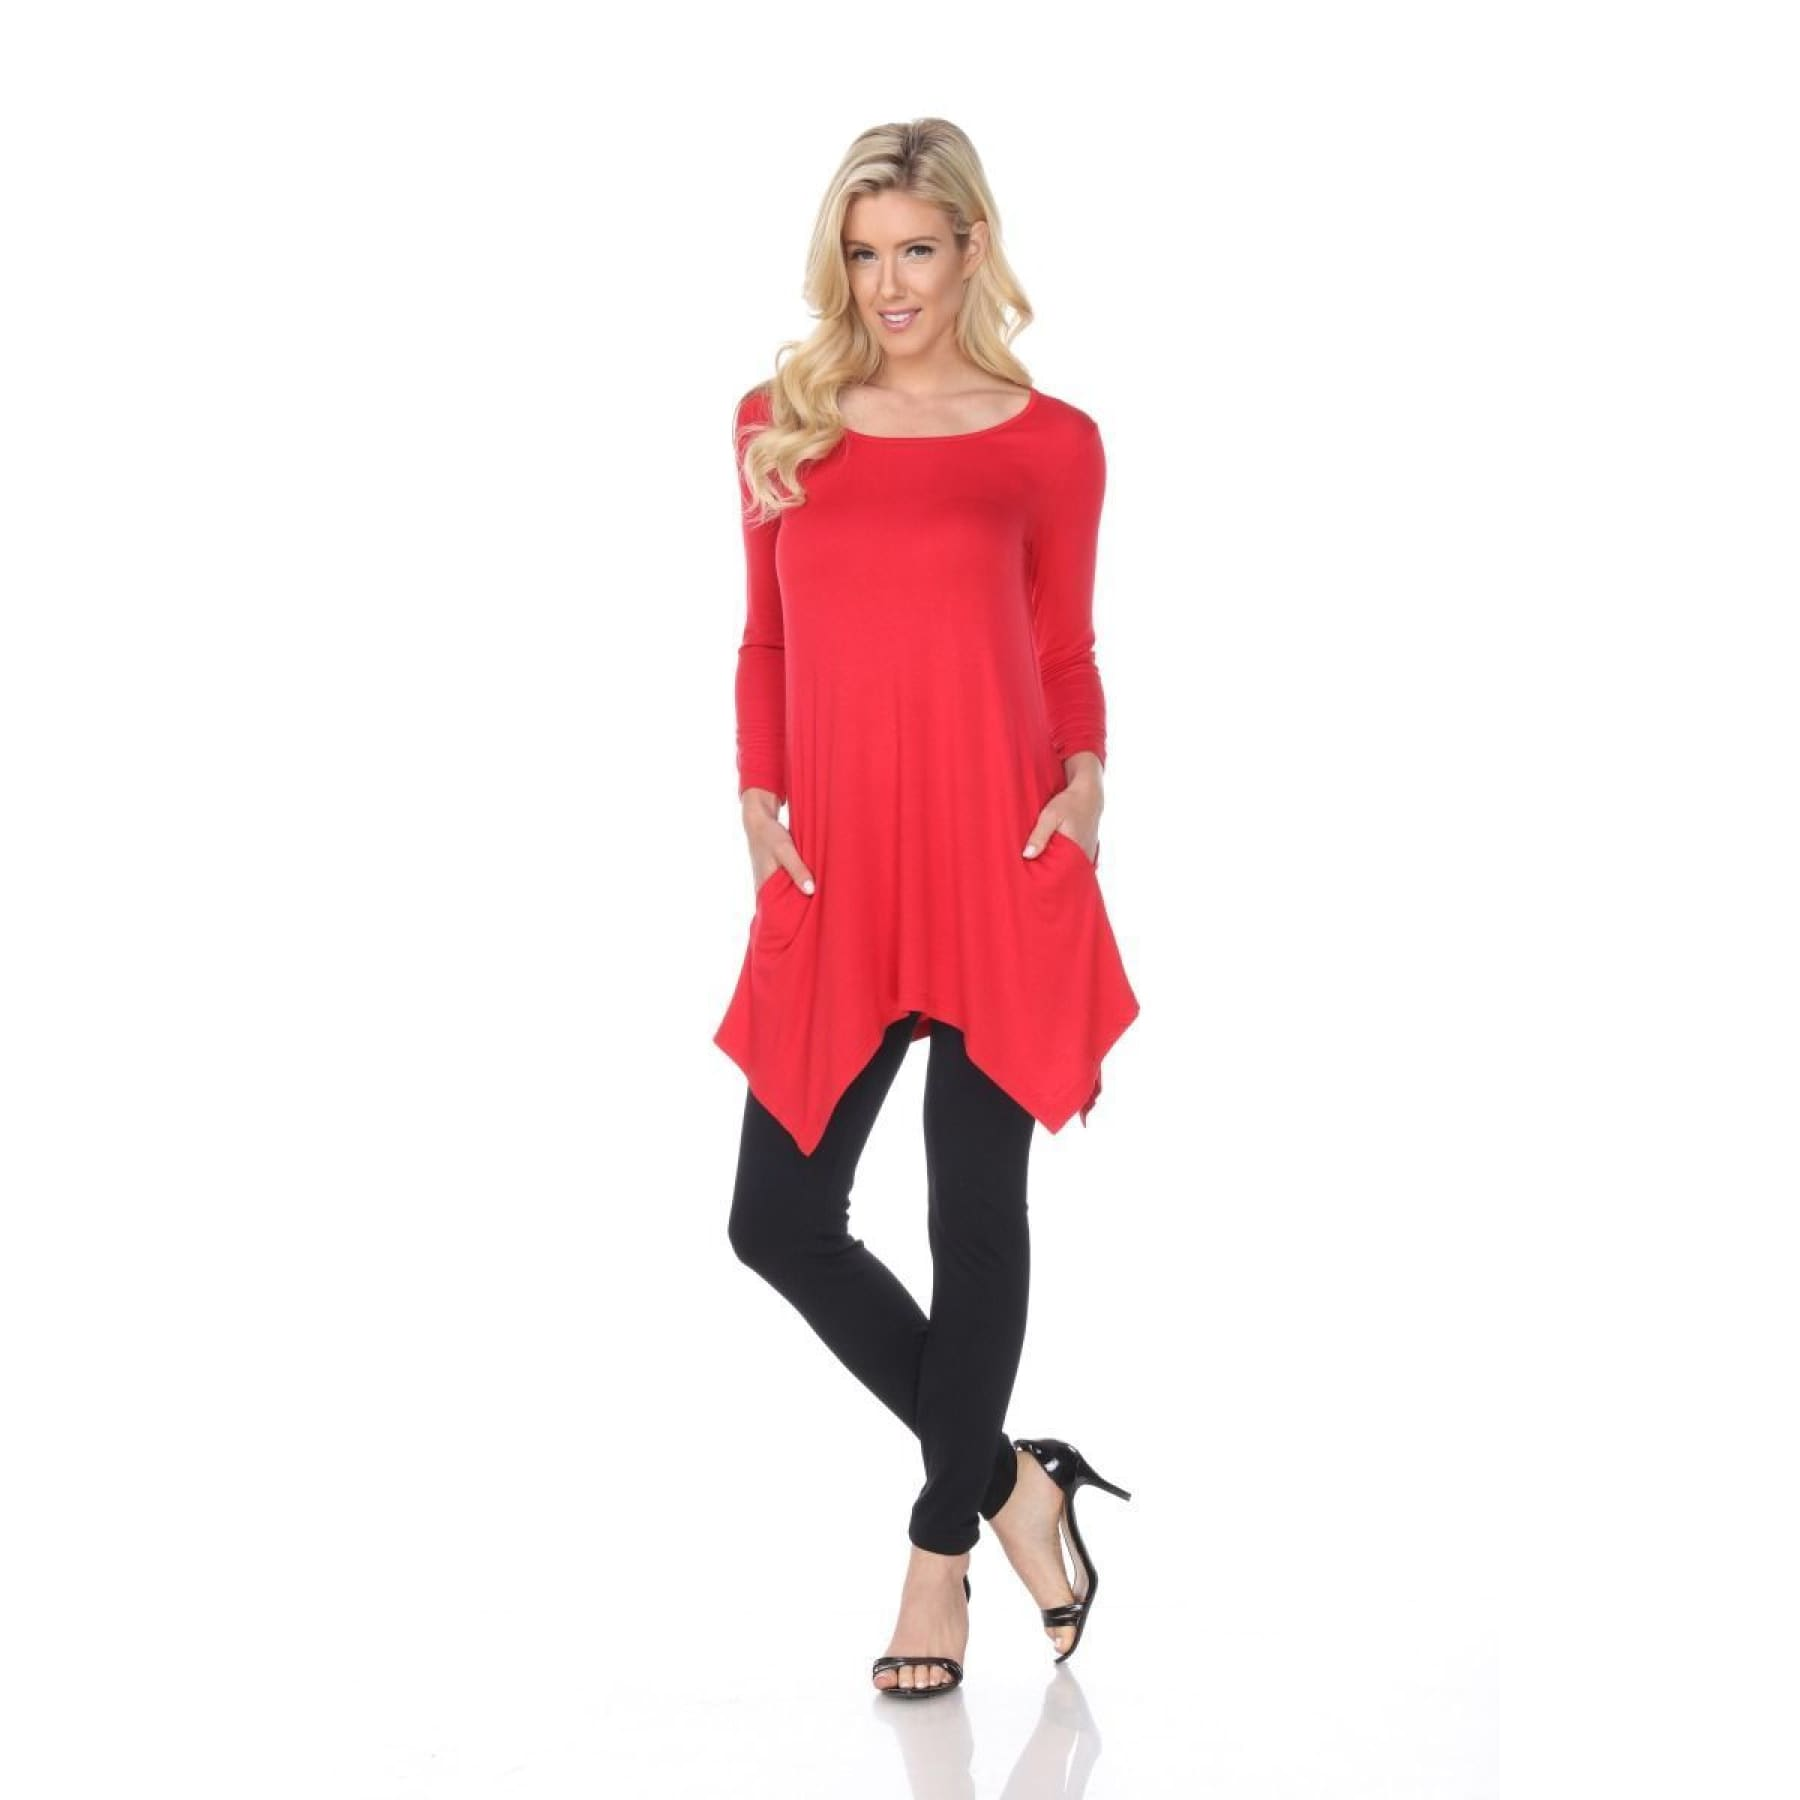 Side Pocket 3/4 Sleeve Solid Tunic Top ~4 colors - S / Red - Top